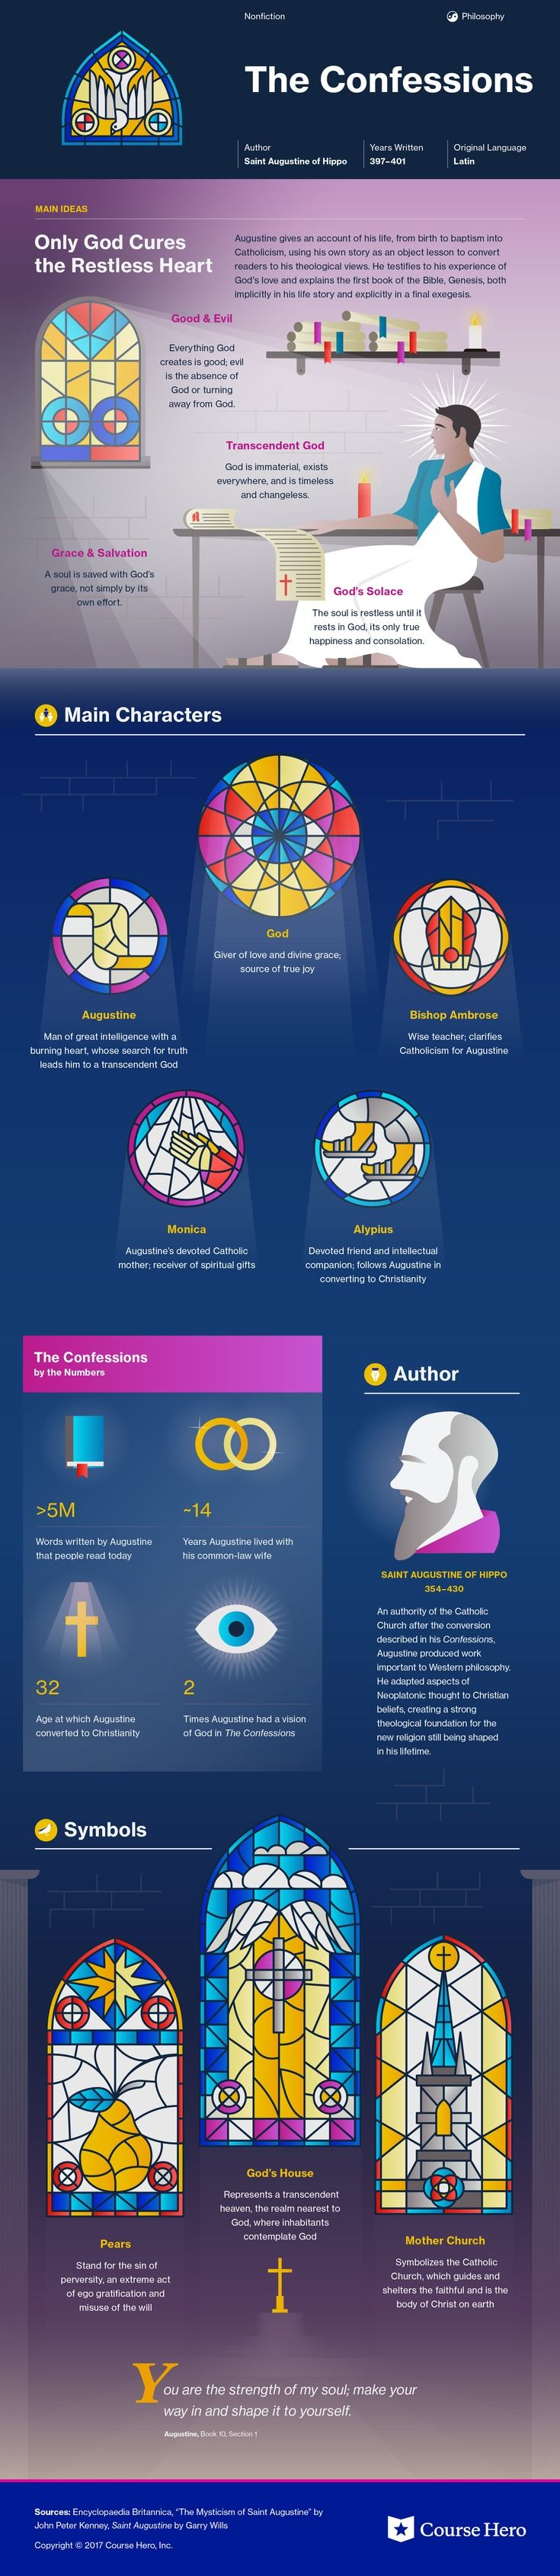 This @CourseHero infographic on Confessions is both visually stunning and informative!